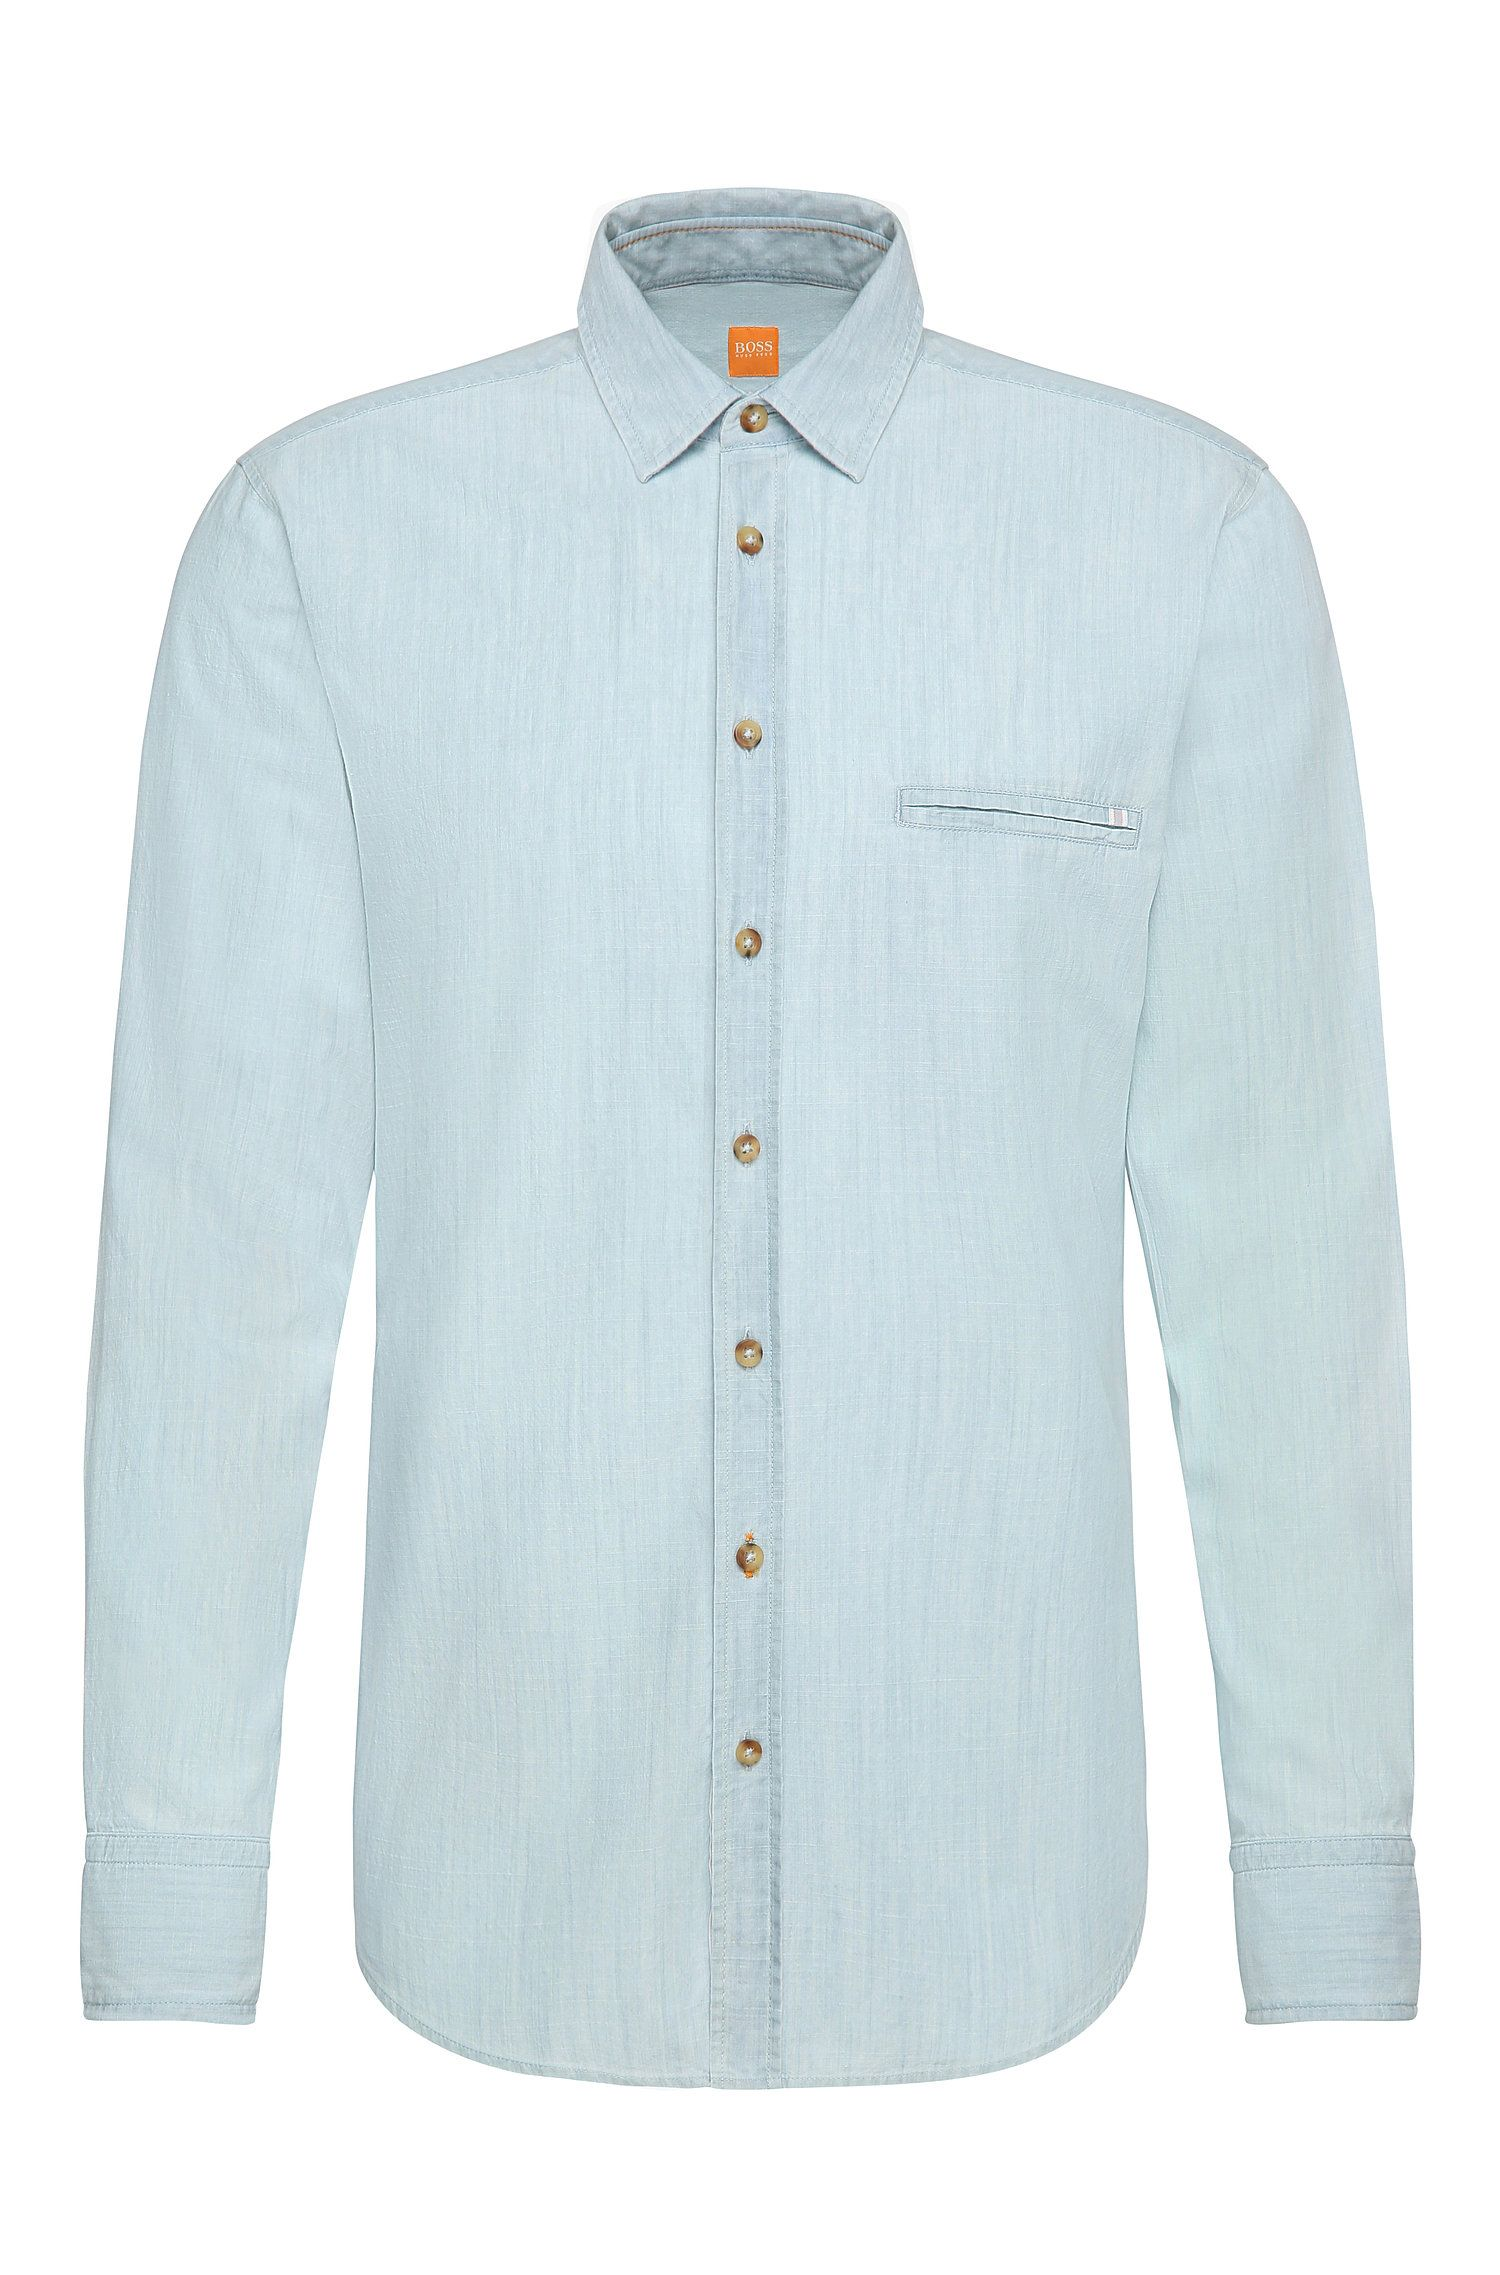 'Elvedge' | Regular Fit, Cotton Denim Button Down Shirt